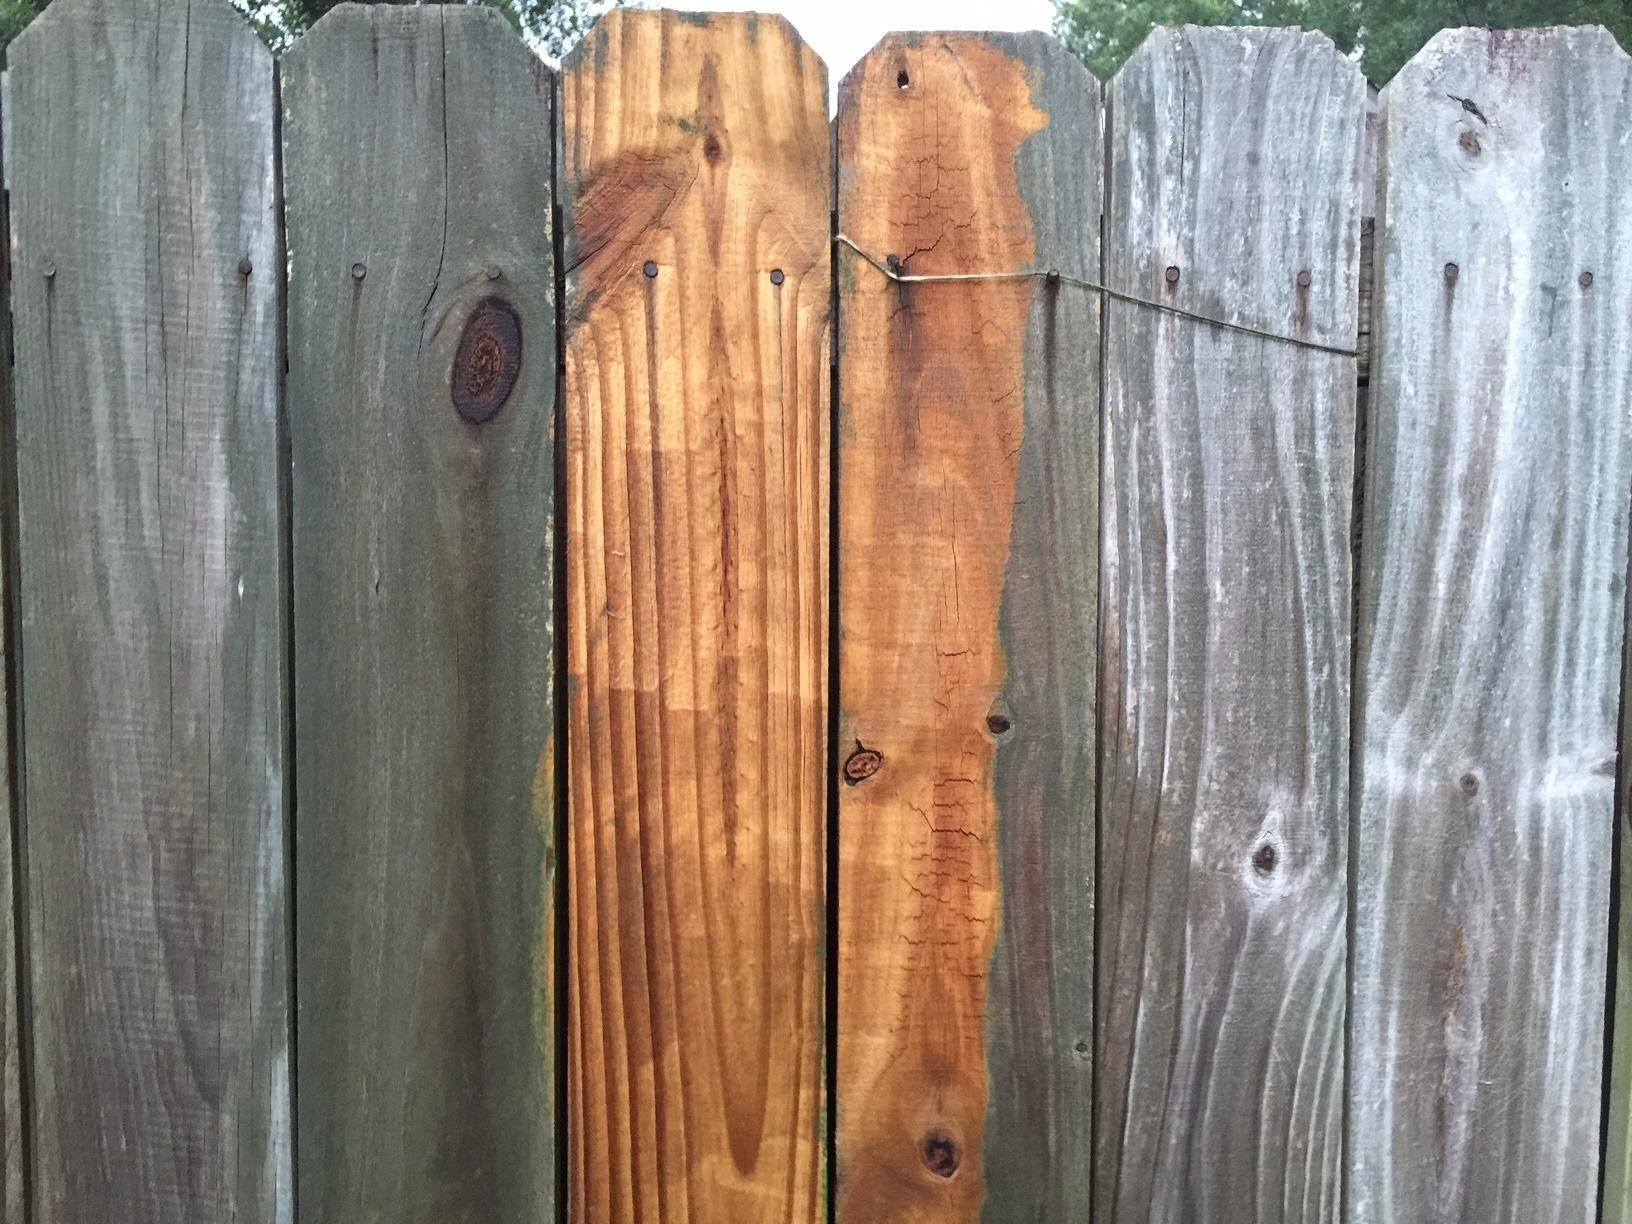 reviewer's photo of their dirty, discolored wooden fence compared to a strip of clean wood where they used the pressure washer